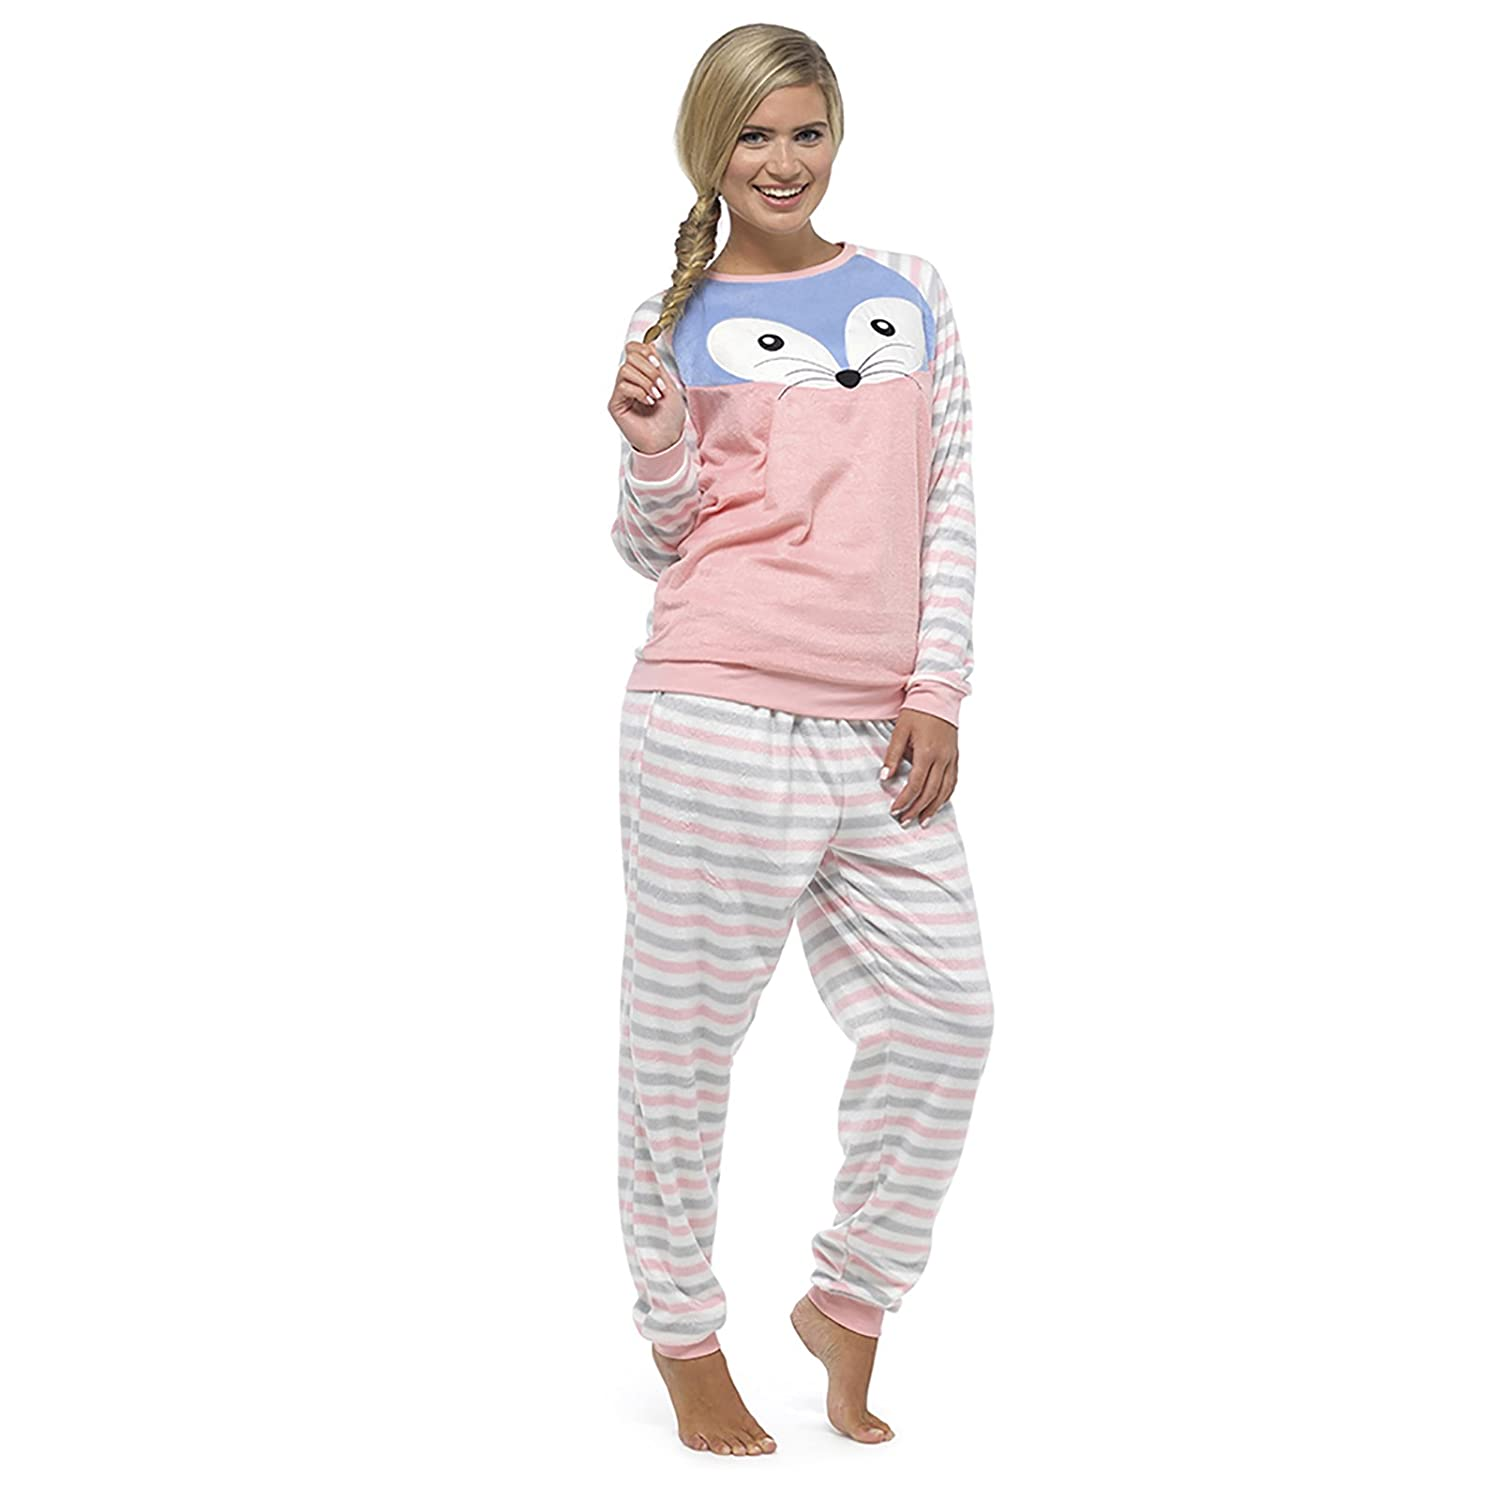 Foxbury Womens Animal Twosie Pyjama Set Top Bottoms Cosy Fleece Gift Pink/Blue RJM